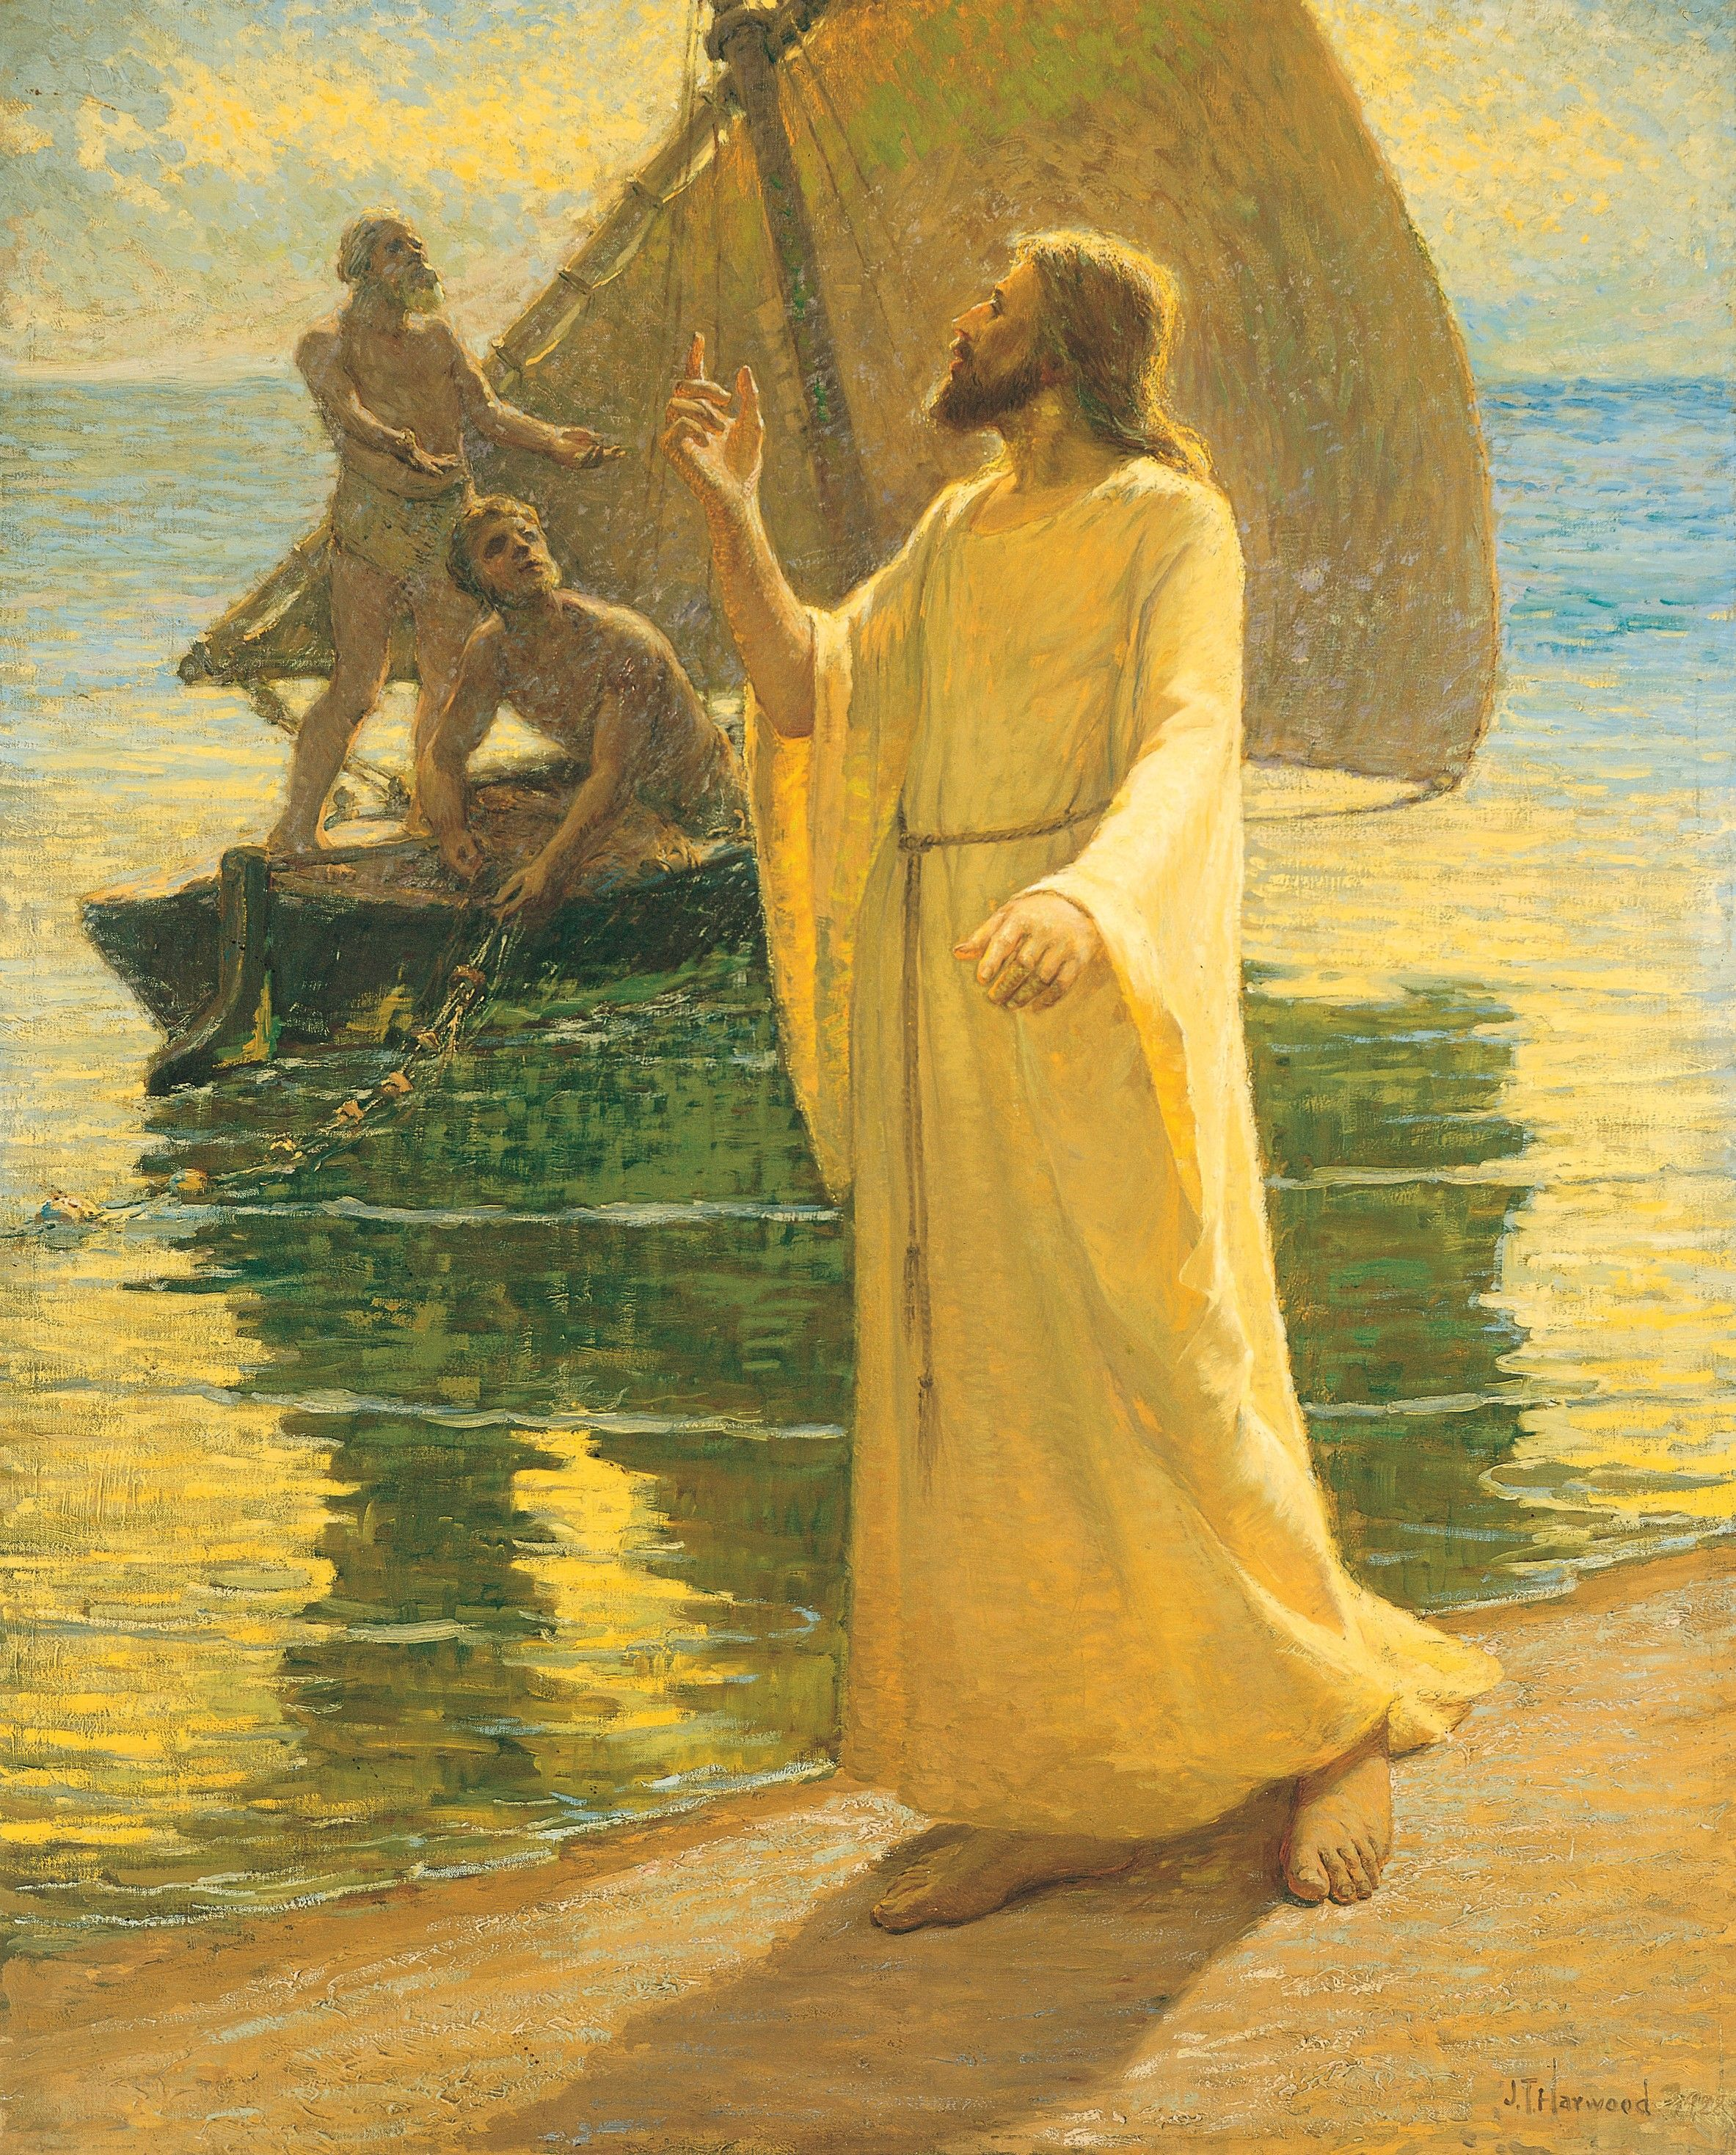 Christ Calling Peter and Andrew, by James T. Harwood